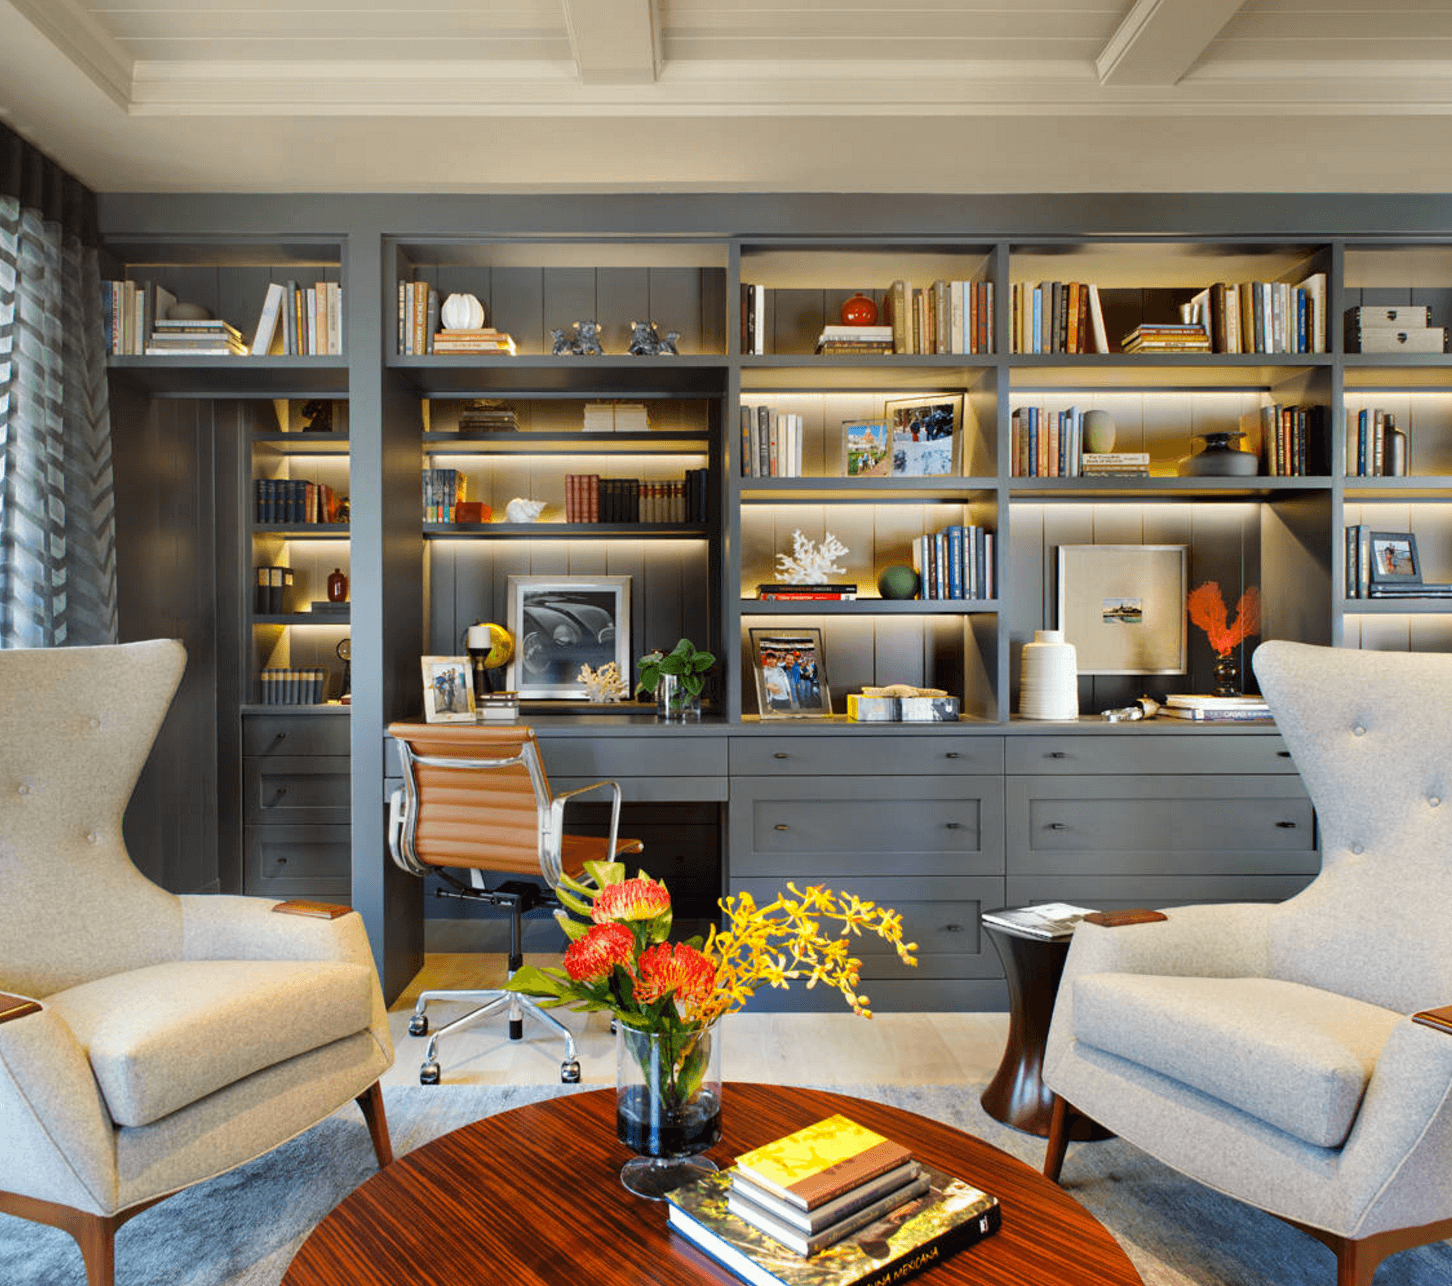 The 18 Best Home Office Design Ideas With Photos: 4 Modern Ideas For Your Home Office Décor